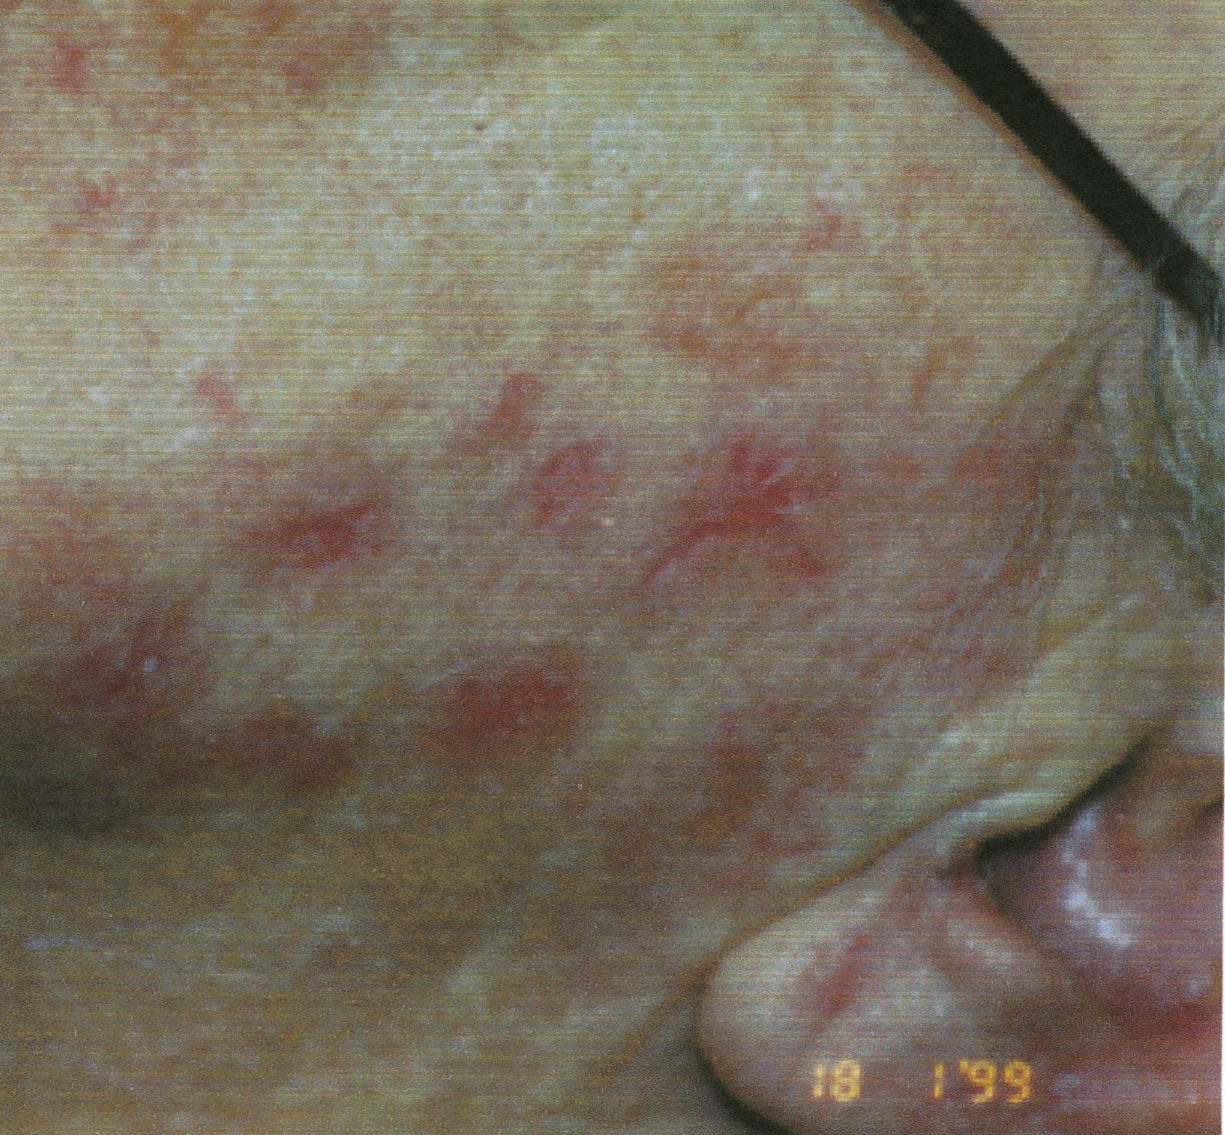 Shingles on Face2